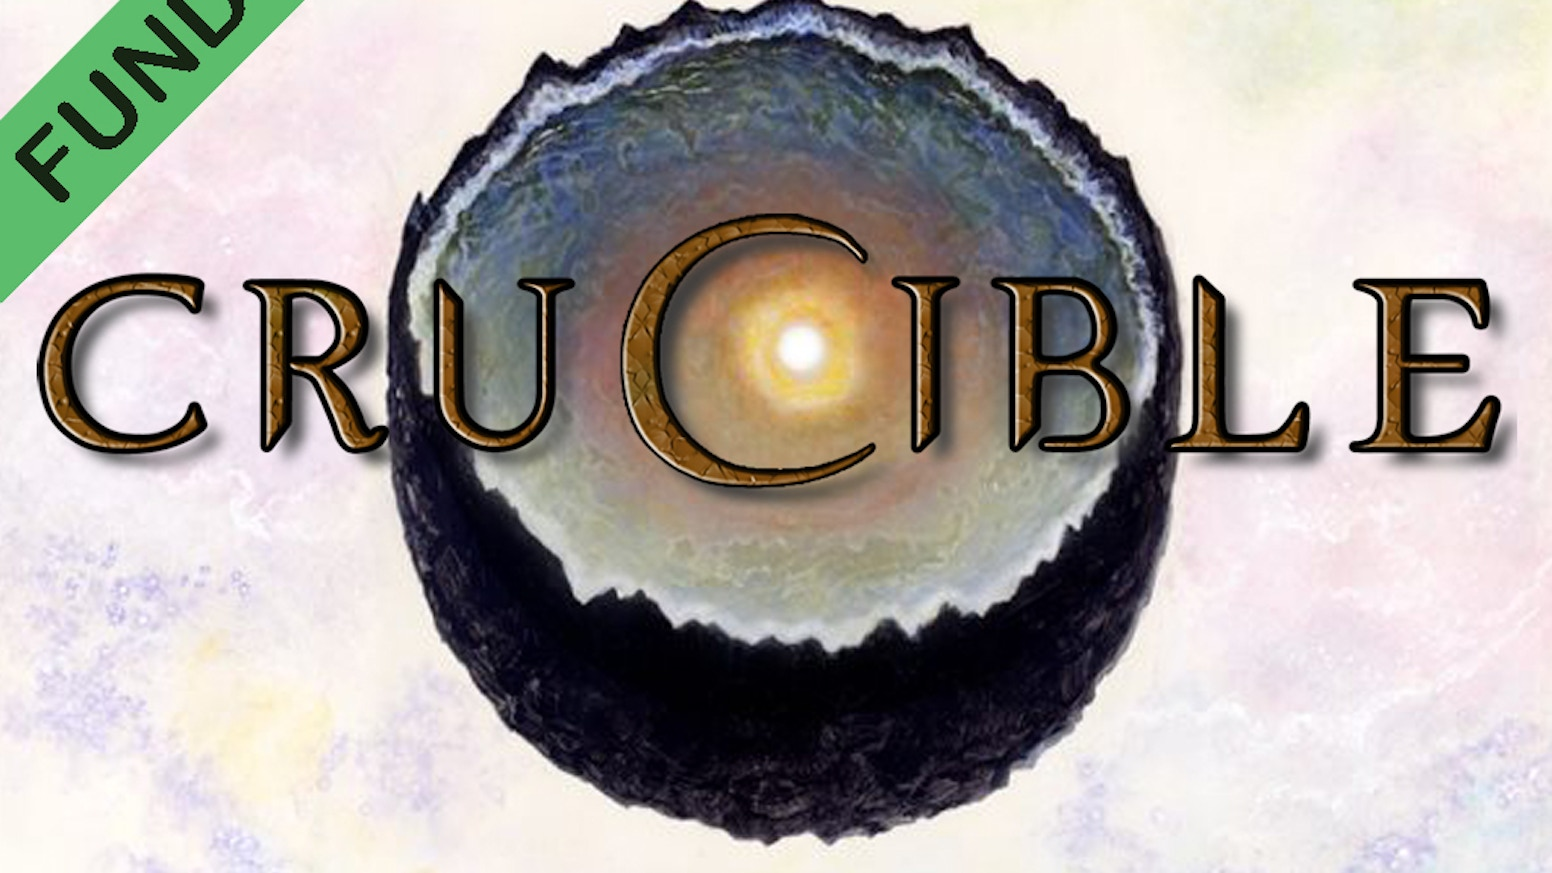 Crucible - Coin-based fantasy RPG of evolving morality by